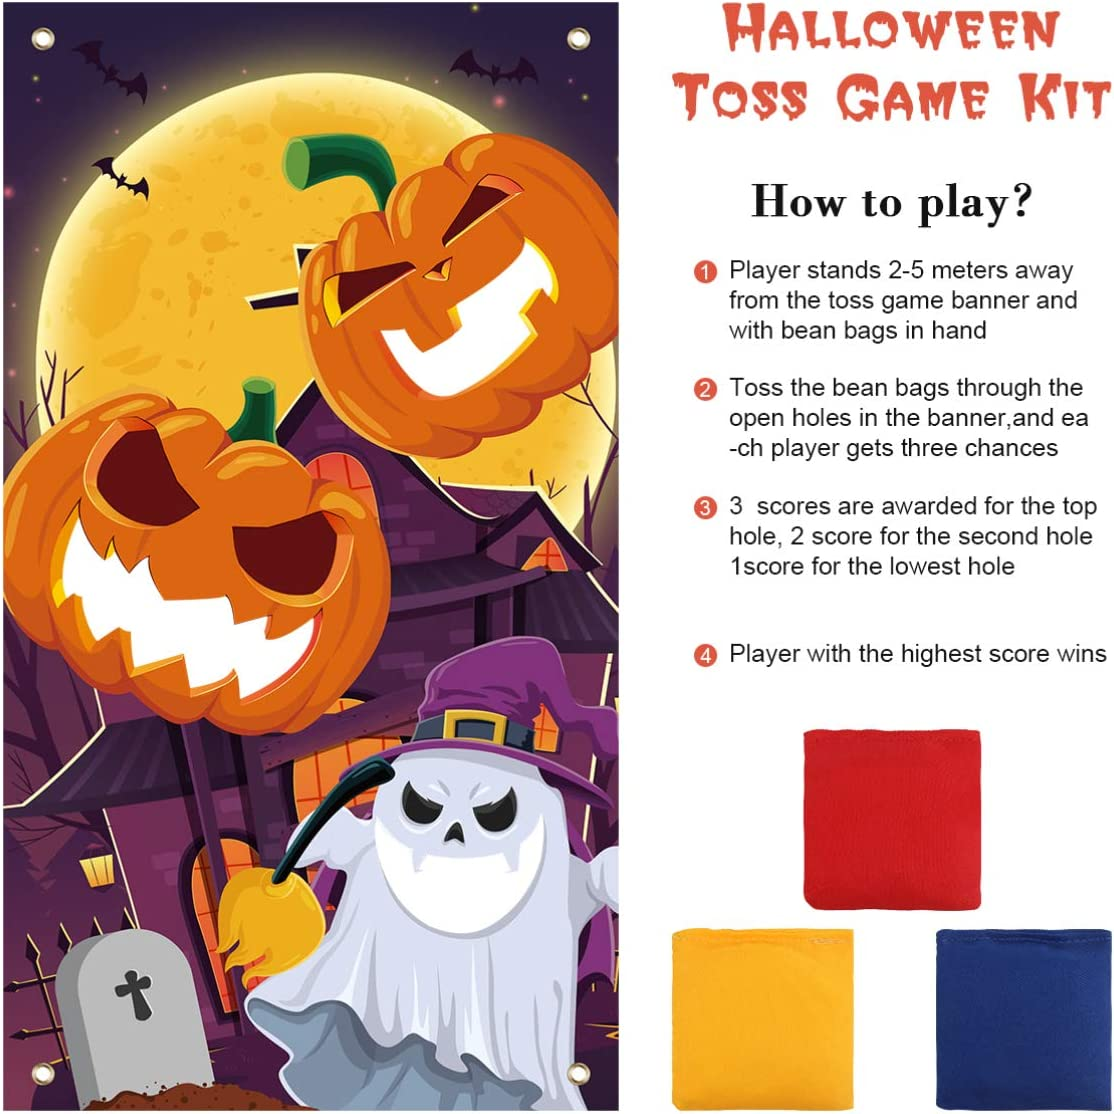 Halloween Toss Game Board Throwing Game Kit Toss Game Banner Kit for Outdoors Indoors Halloween